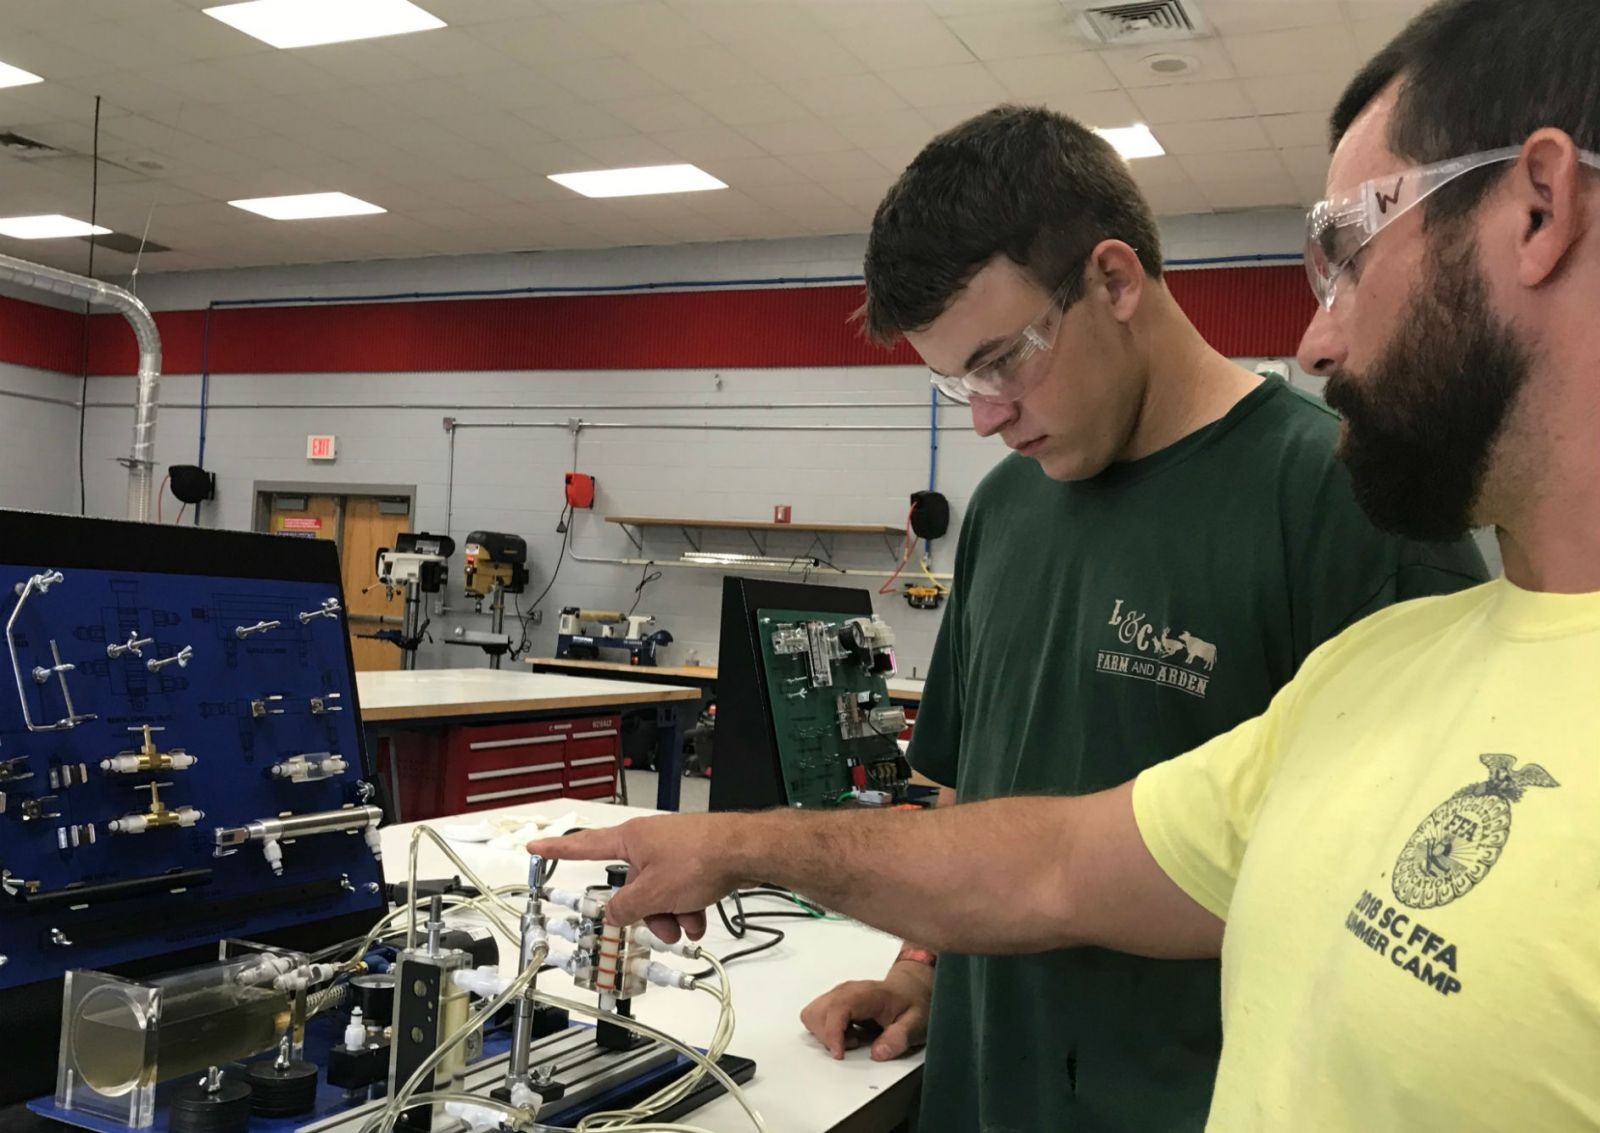 Hunter Richey, a junior at Belton-Honea Path High School, works with a hydraulic trainer under the instruction of his teacher Ben Woody. (Photo/Teresa Cutlip)